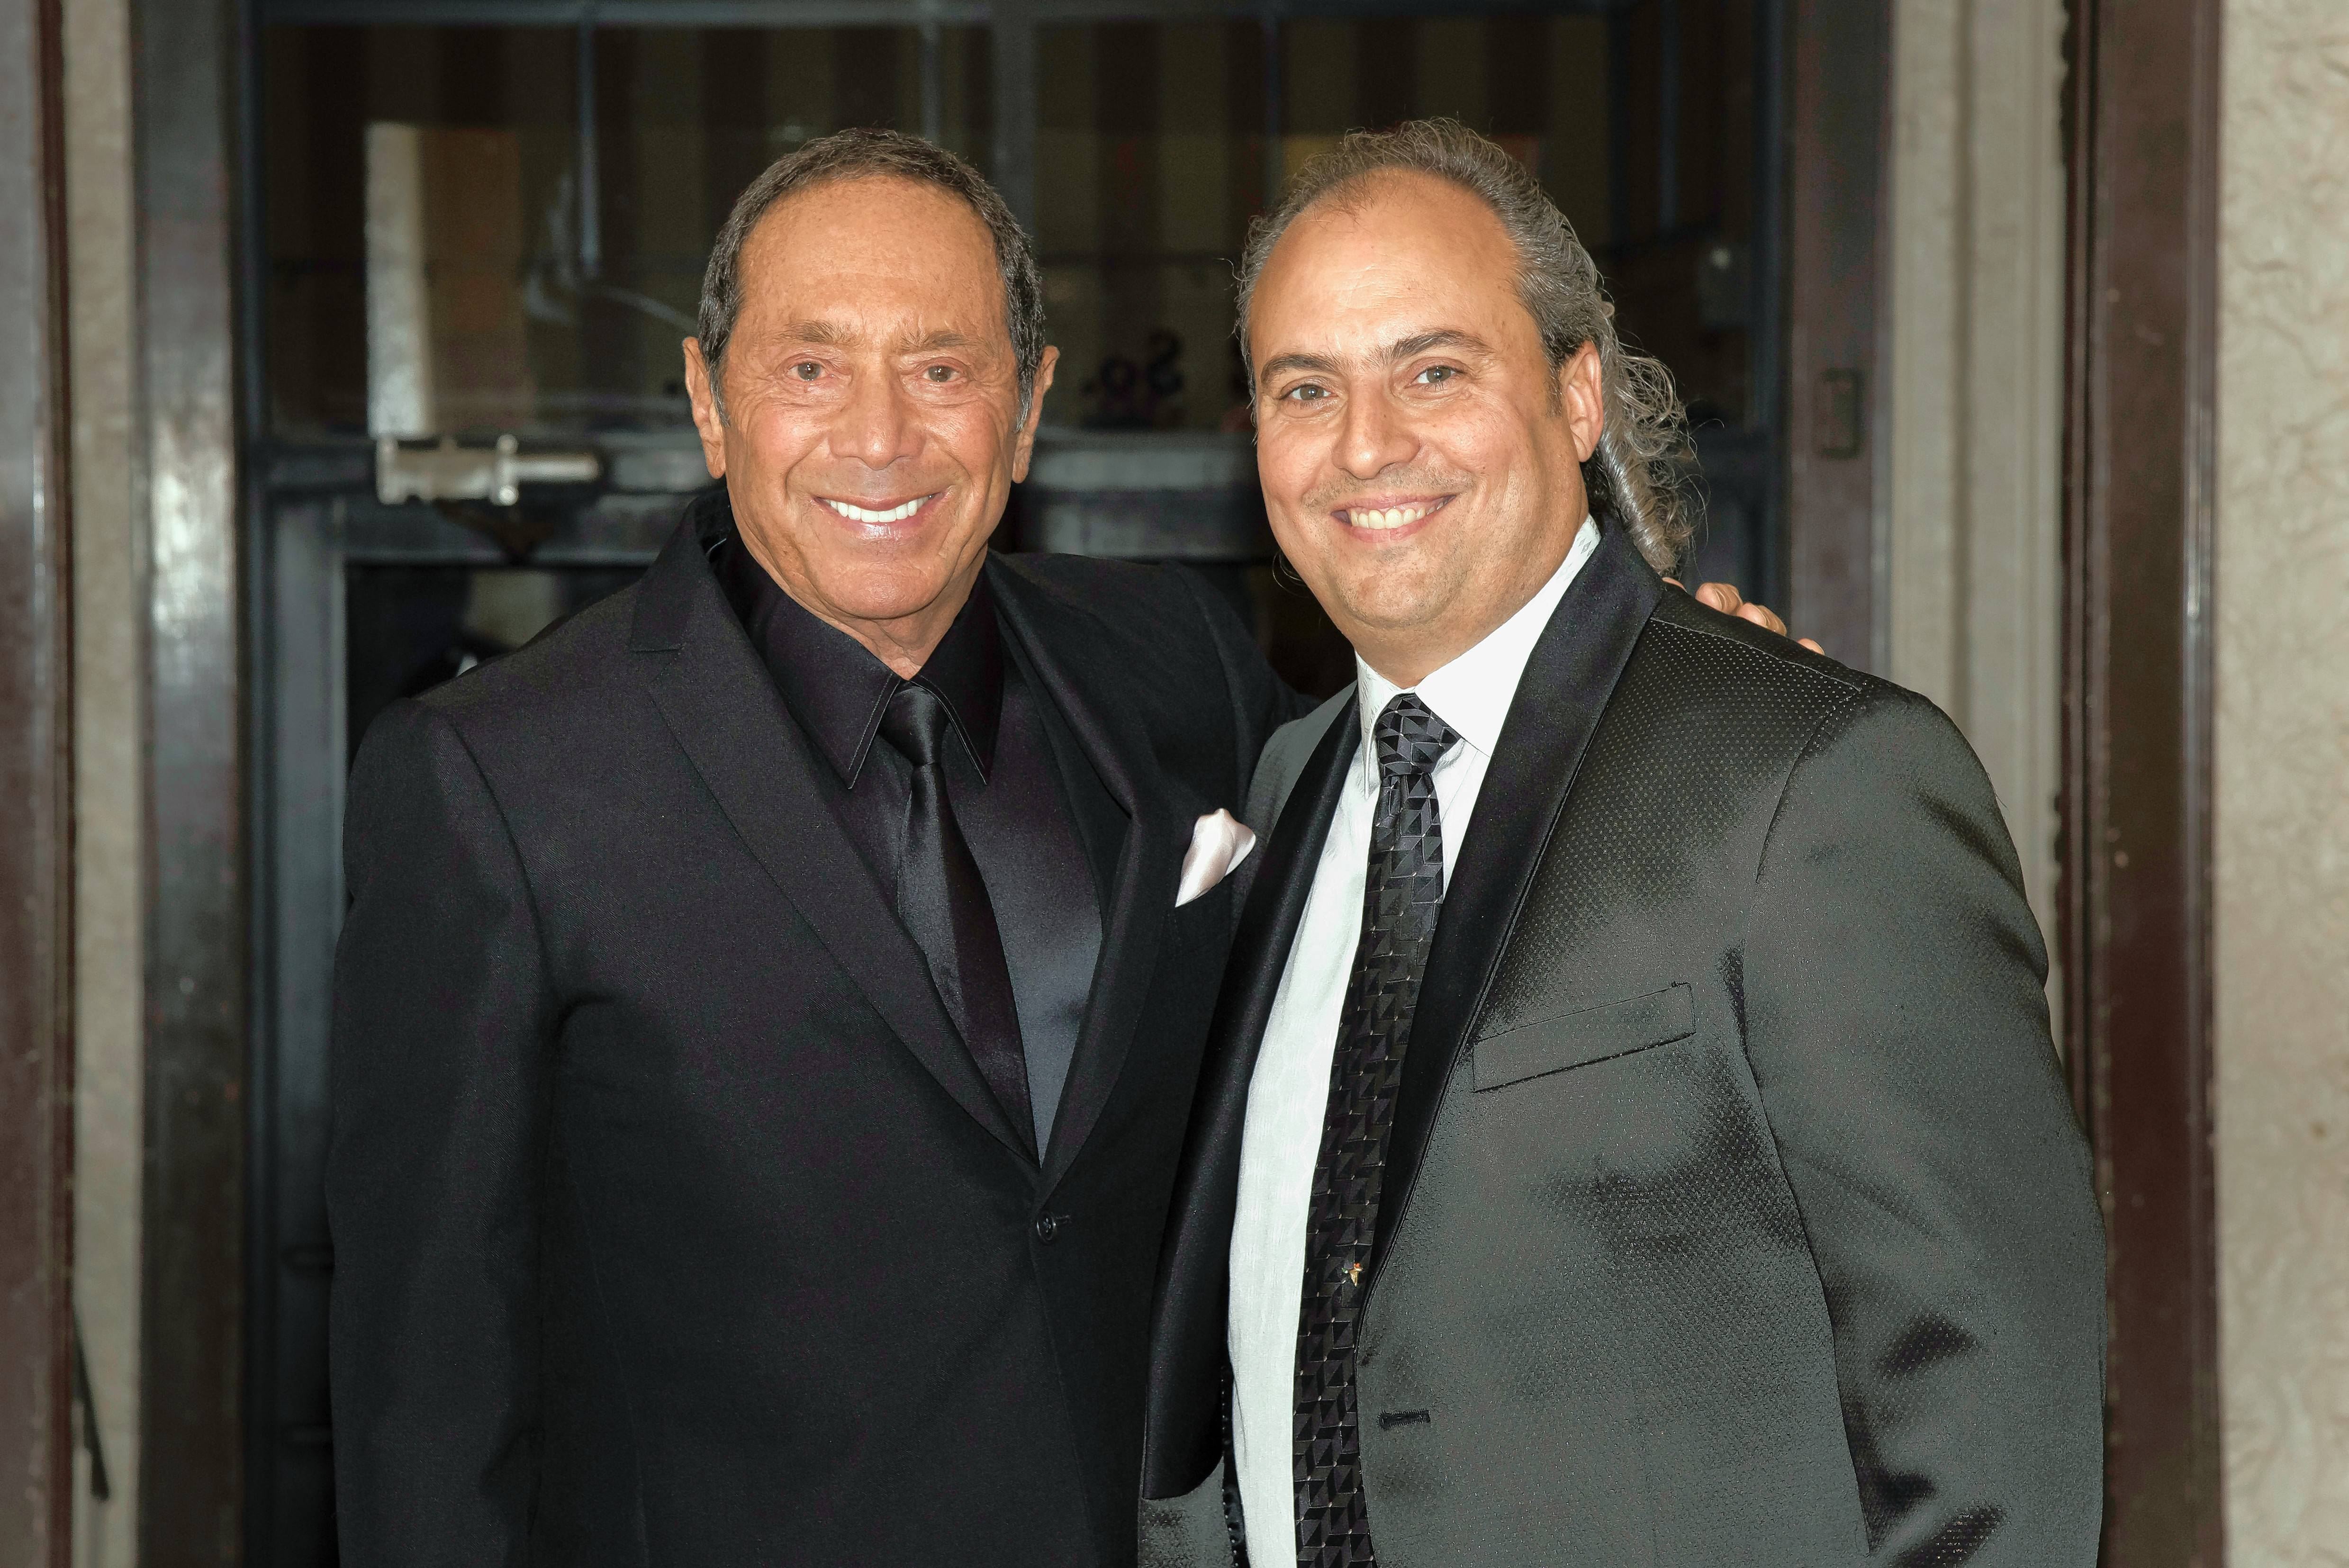 Singer and songwriter Paul Anka, left, recently performed two shows at Ron Onesti's Arcada Theatre in St. Charles.